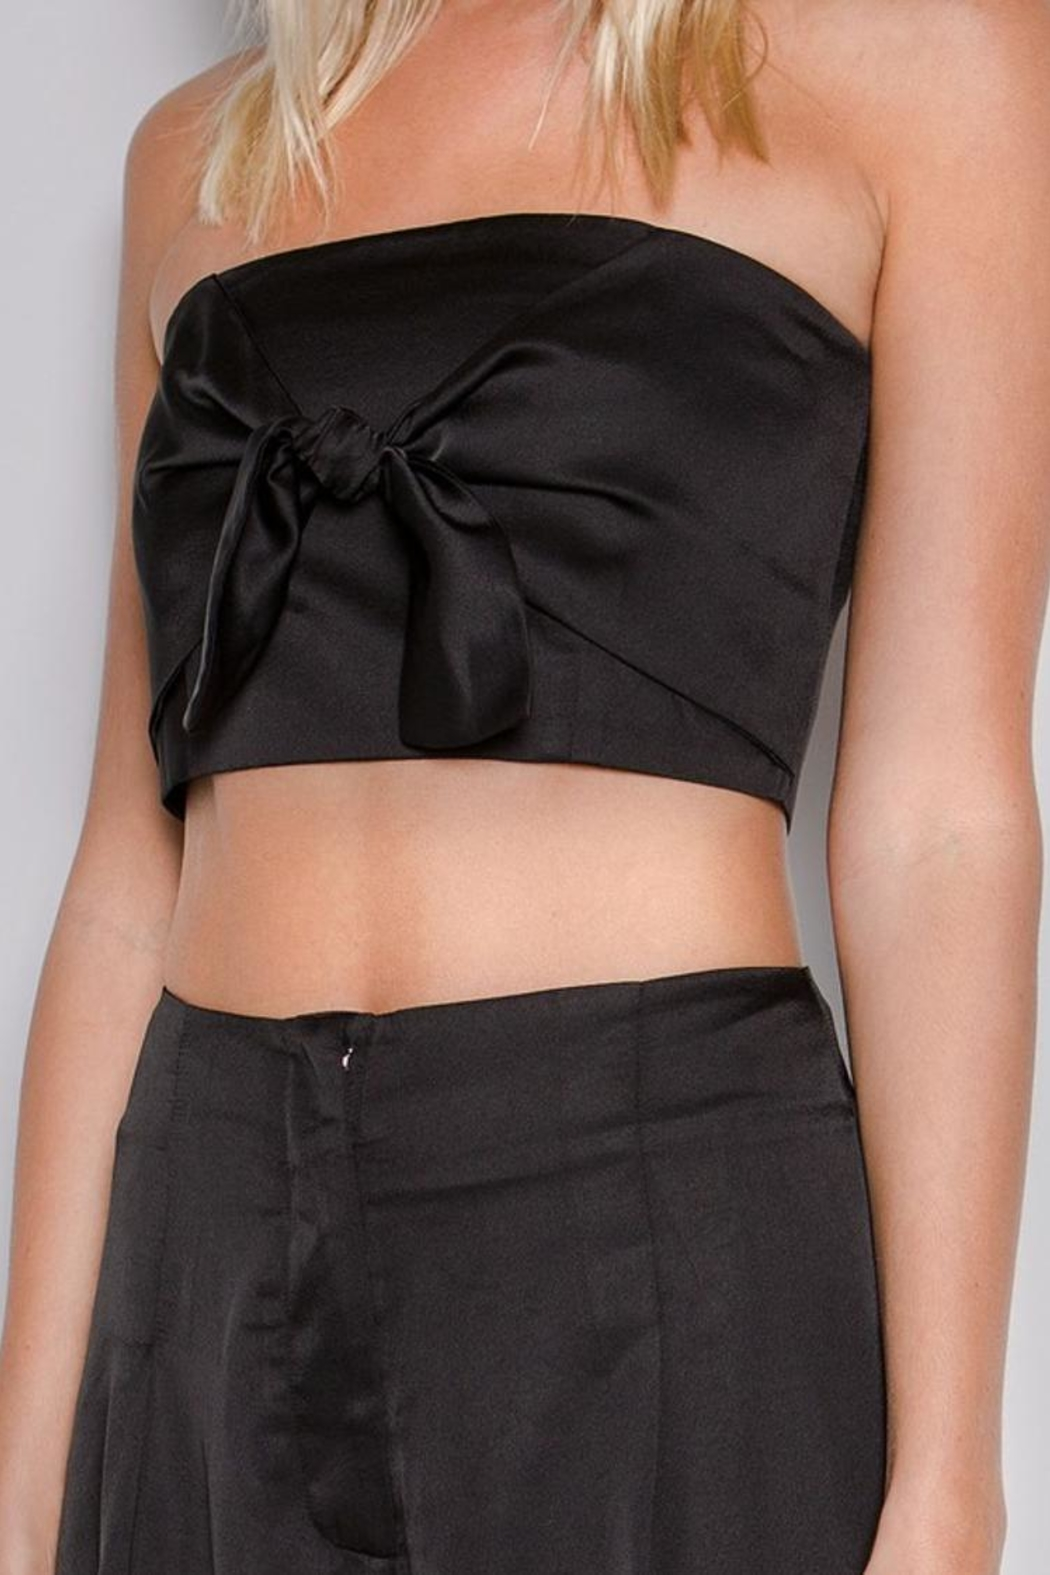 skylar madison Satin Front-Tie Top - Front Full Image